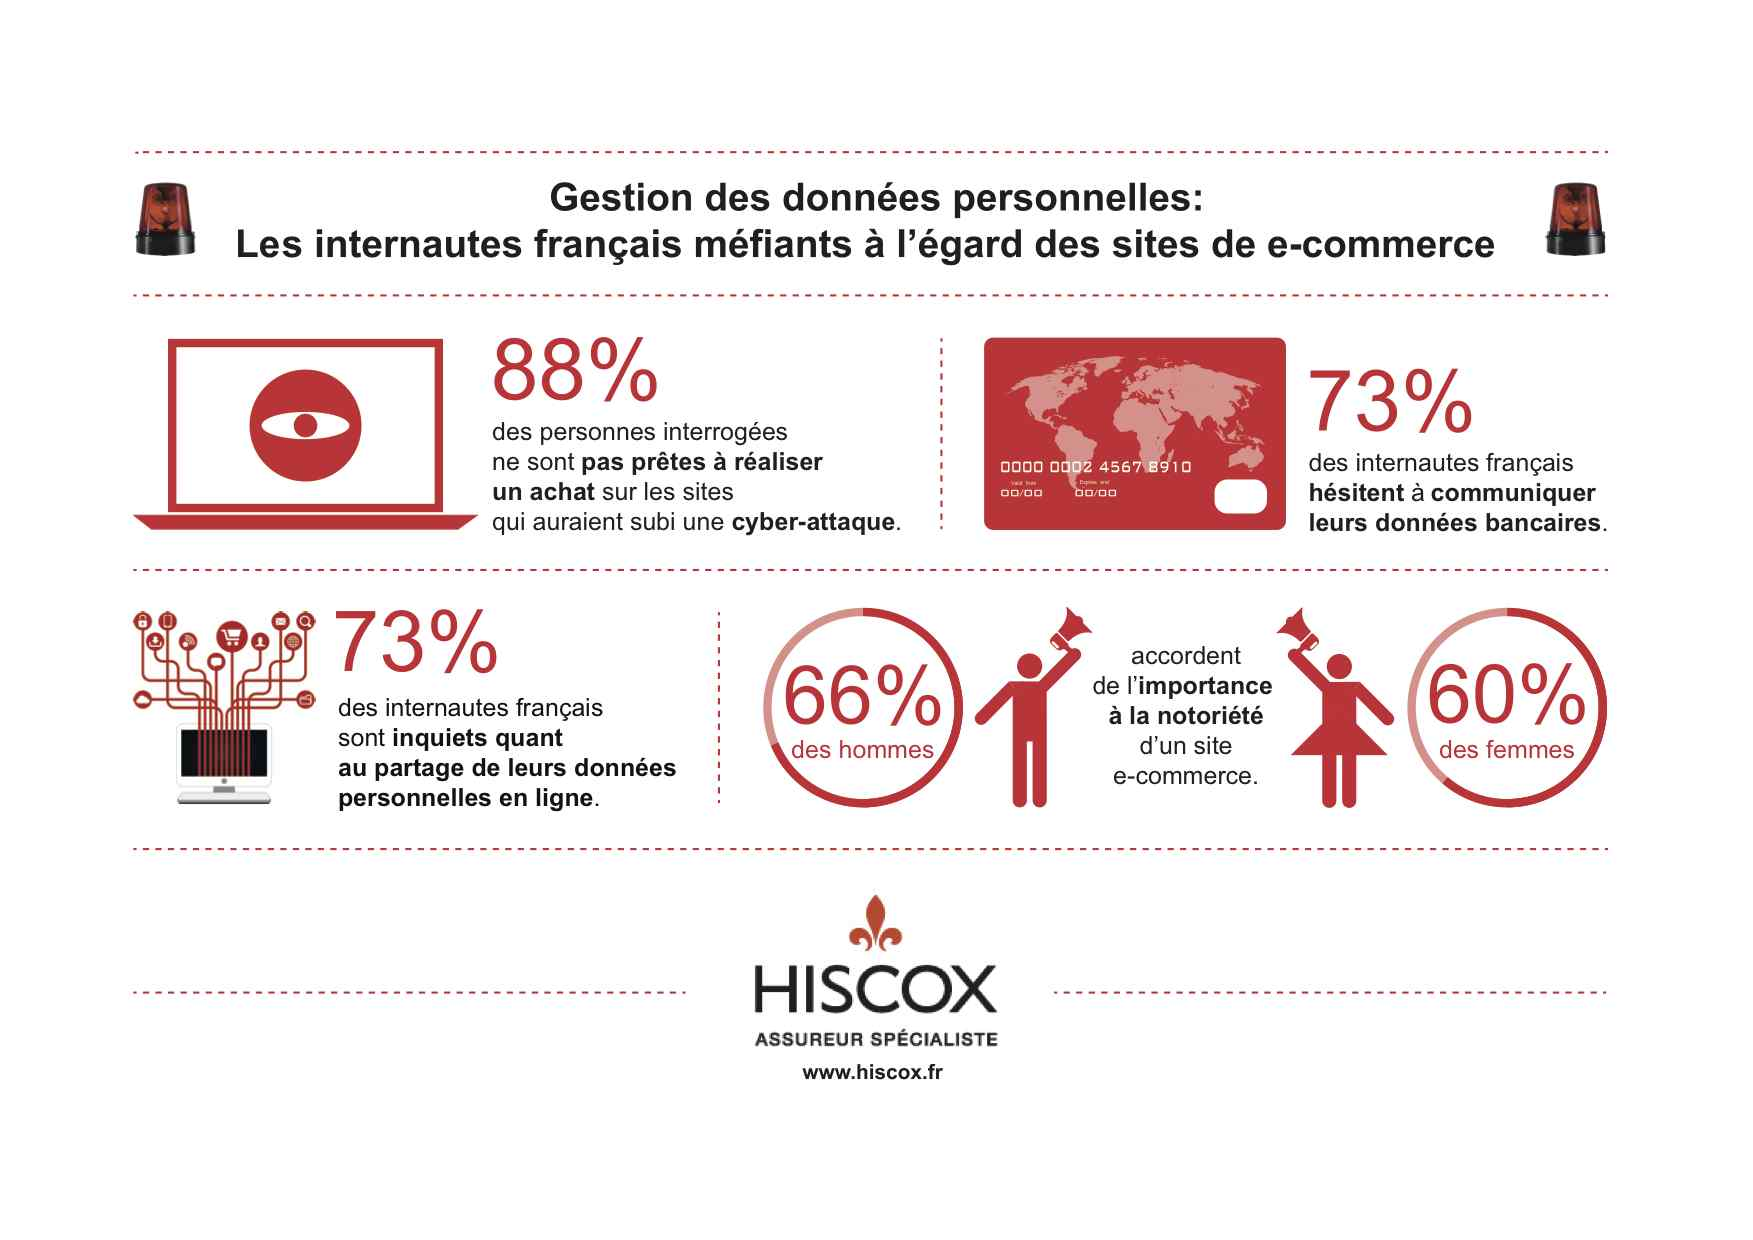 Hiscox-IFOP-e-commerce